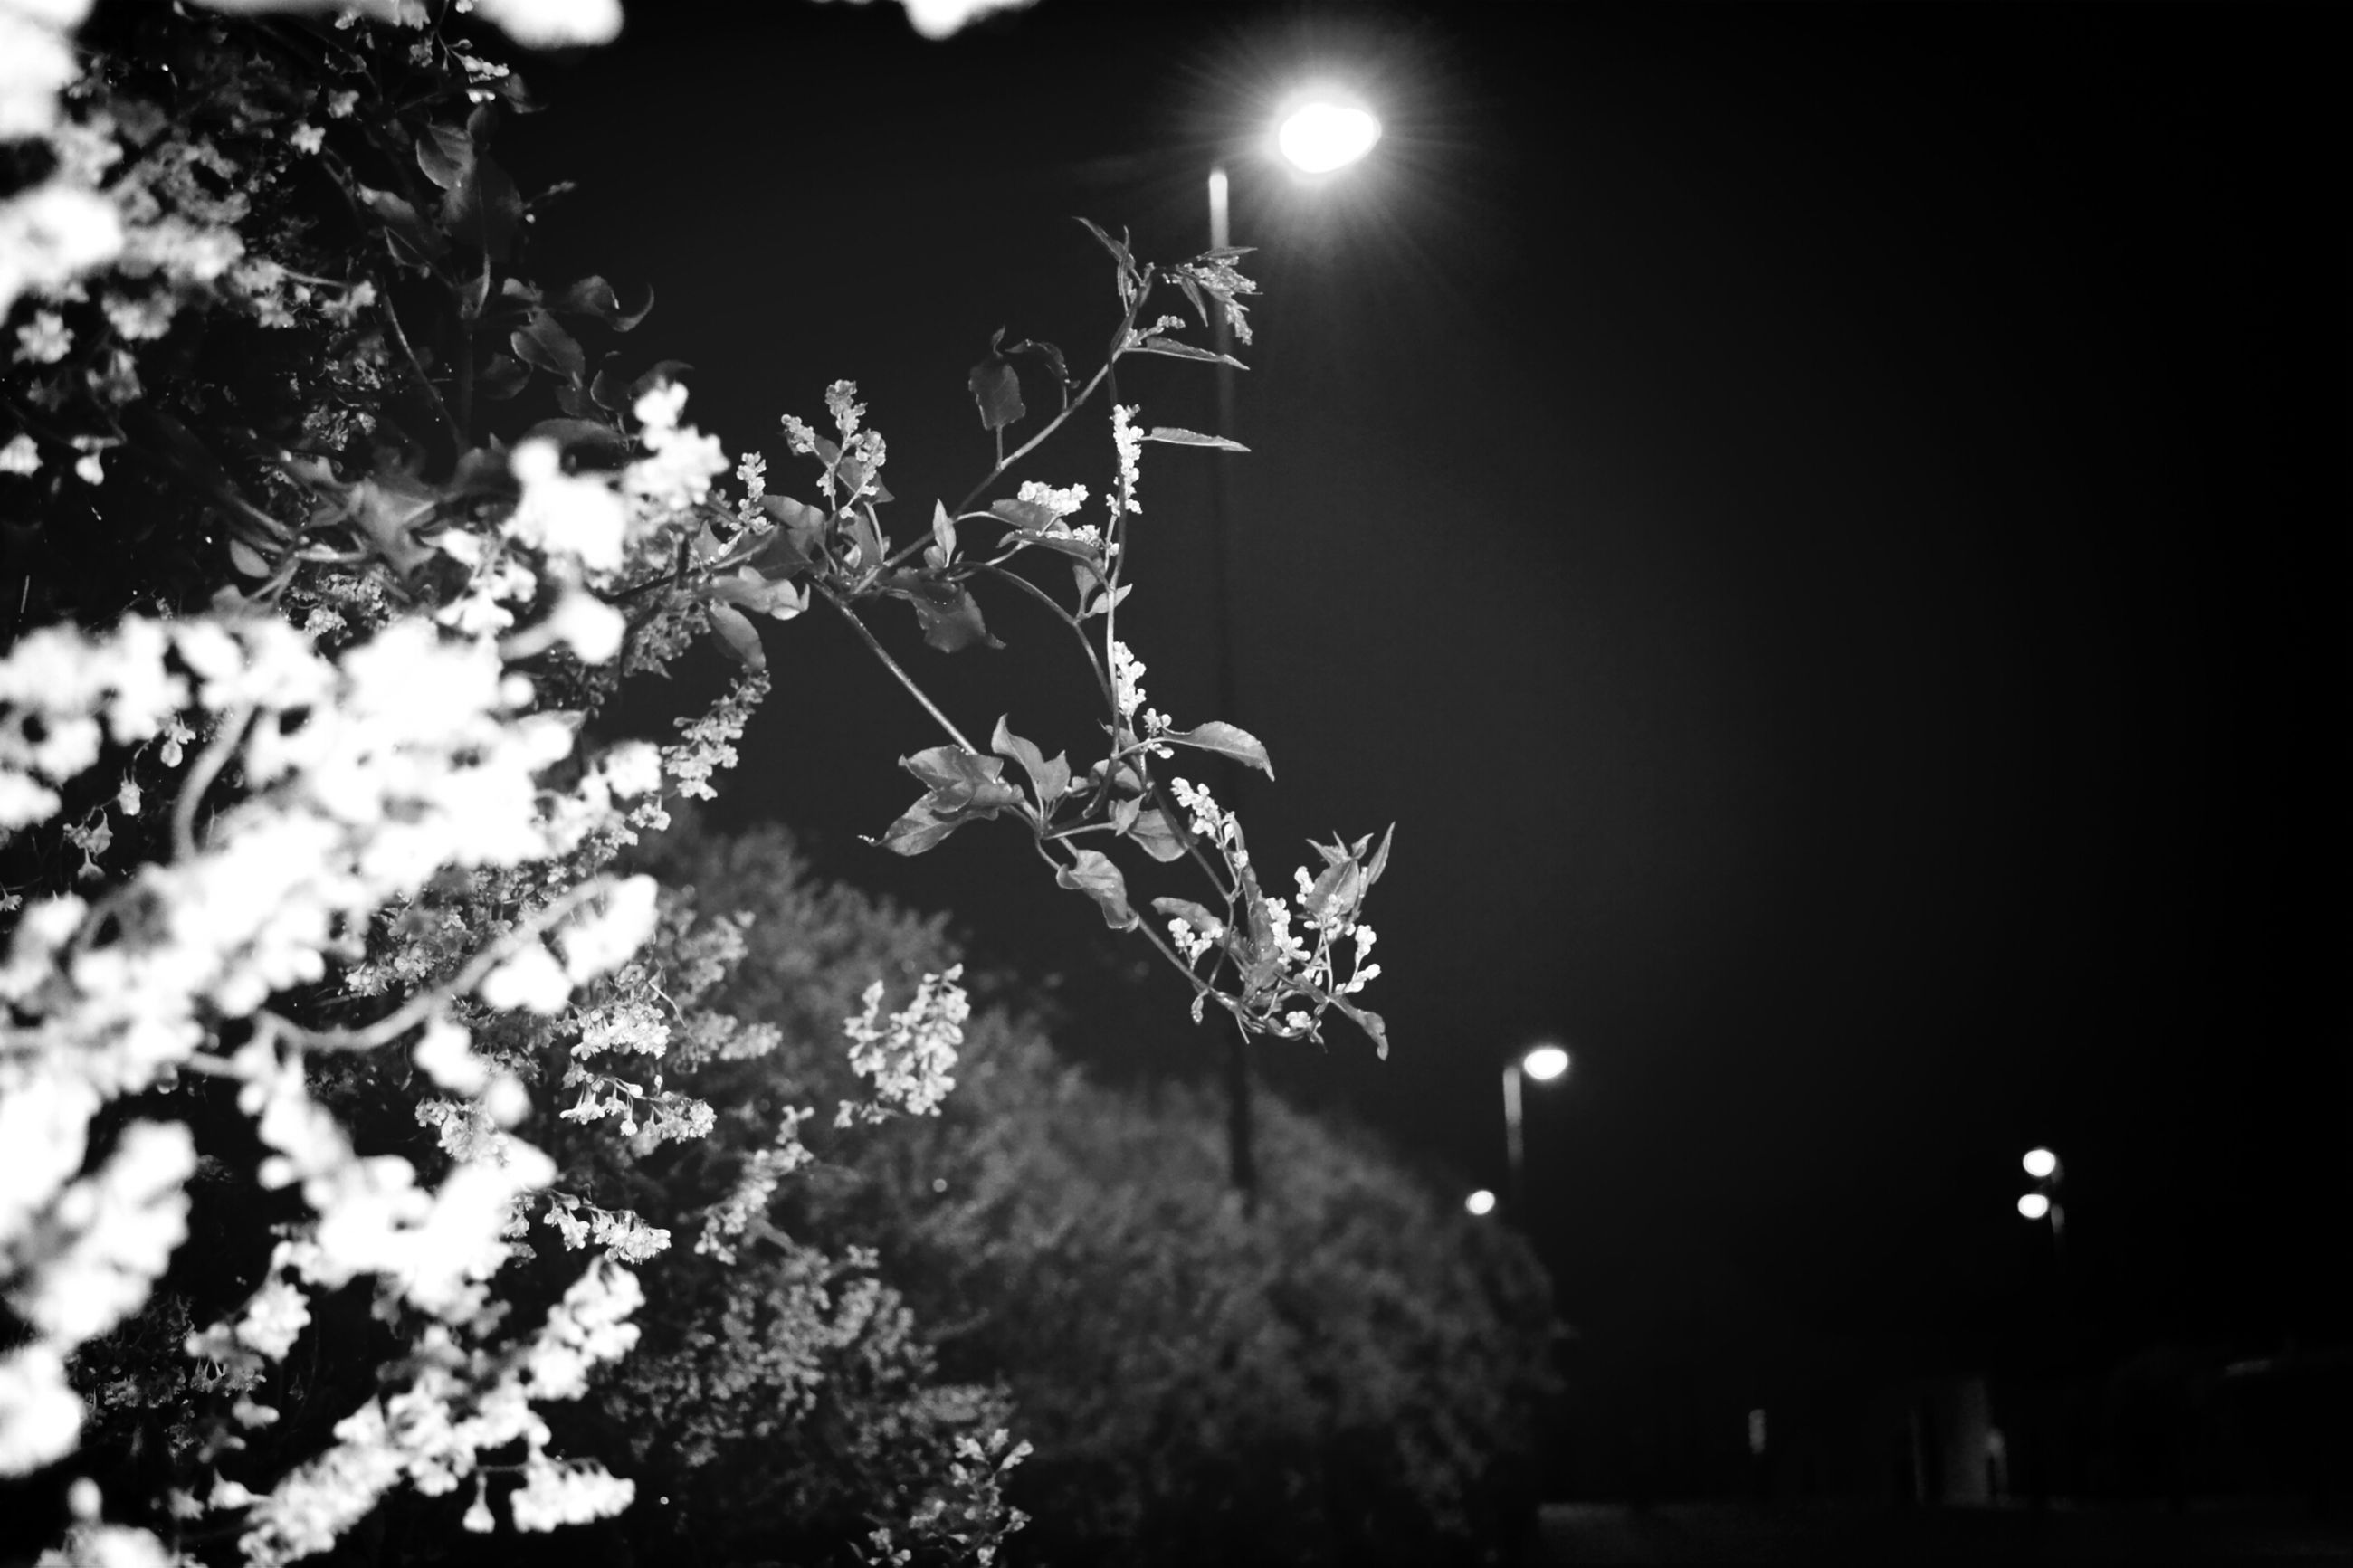 low angle view, night, tree, illuminated, growth, lighting equipment, branch, clear sky, street light, nature, plant, outdoors, built structure, no people, silhouette, sky, dusk, beauty in nature, building exterior, leaf